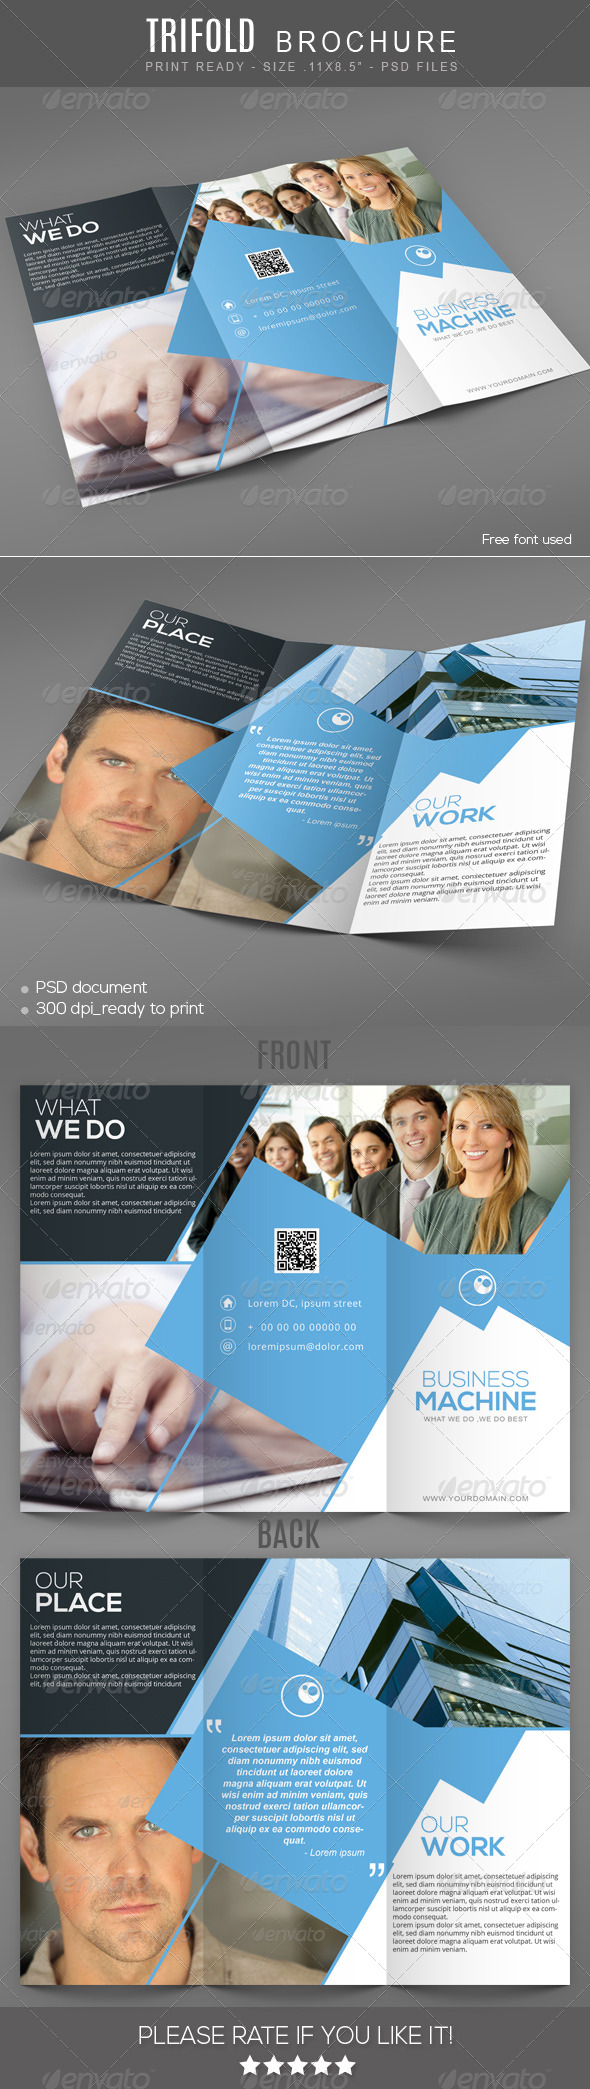 Business machine Trifold Brochure - Corporate Brochures